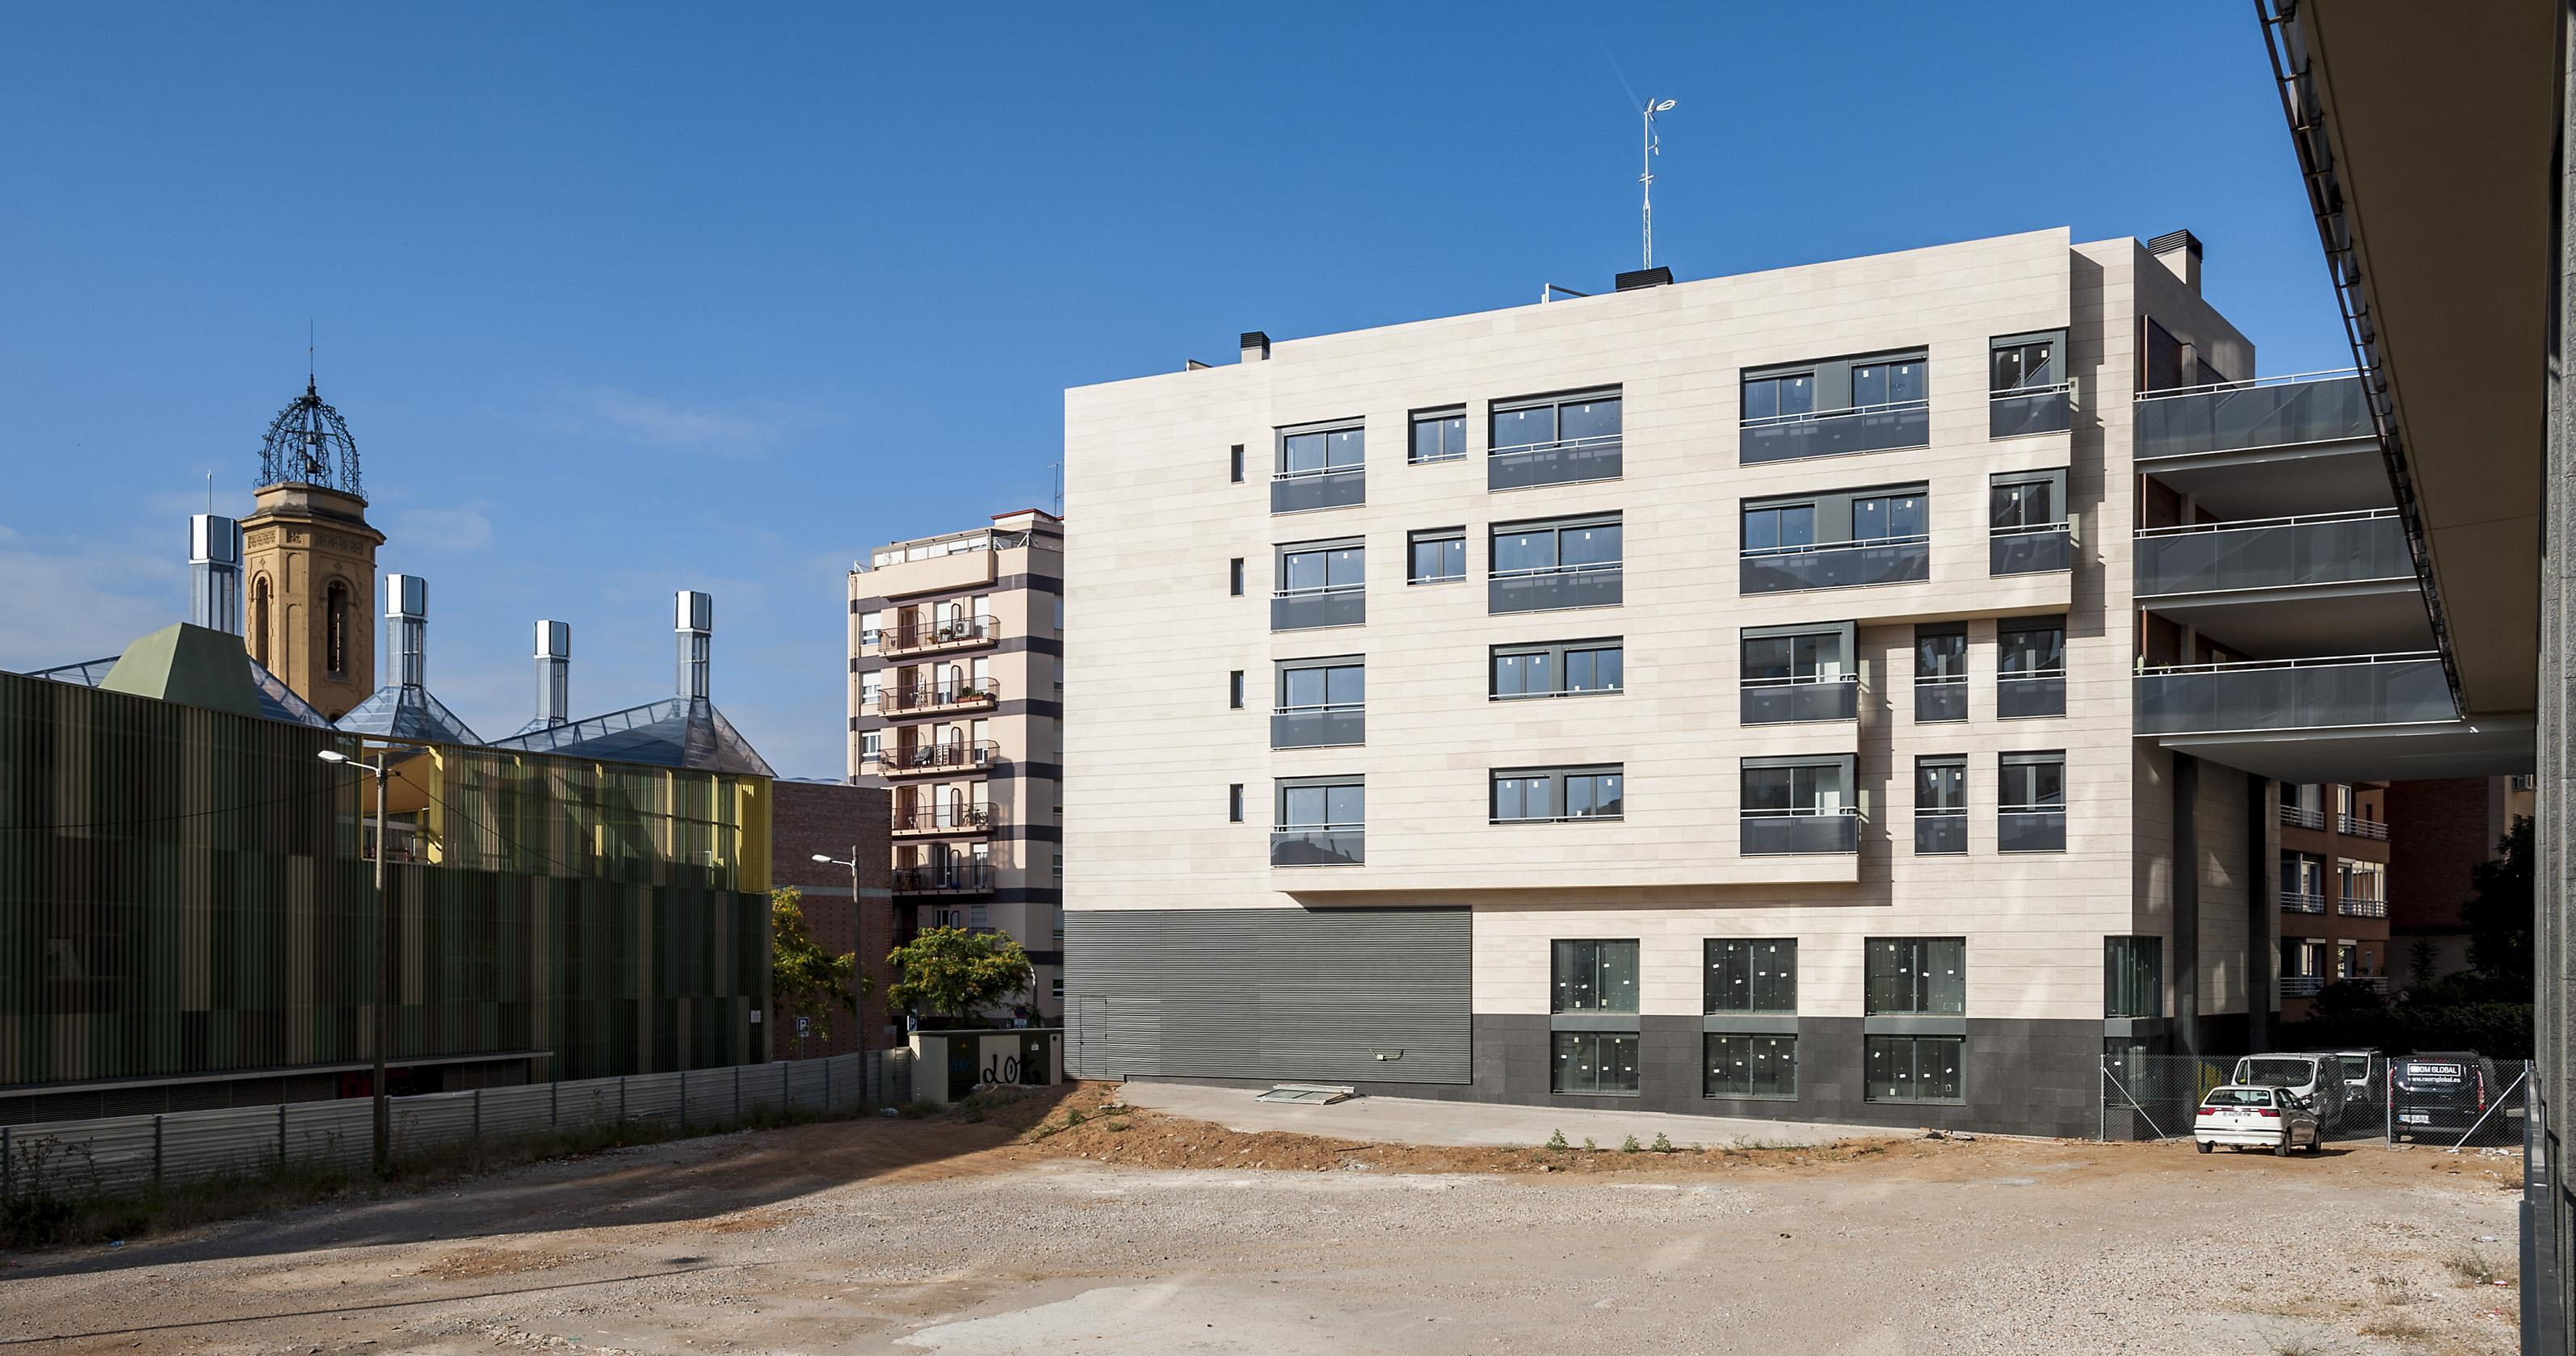 208066 Commercial Premises for sale in Les Corts, Les Corts 18